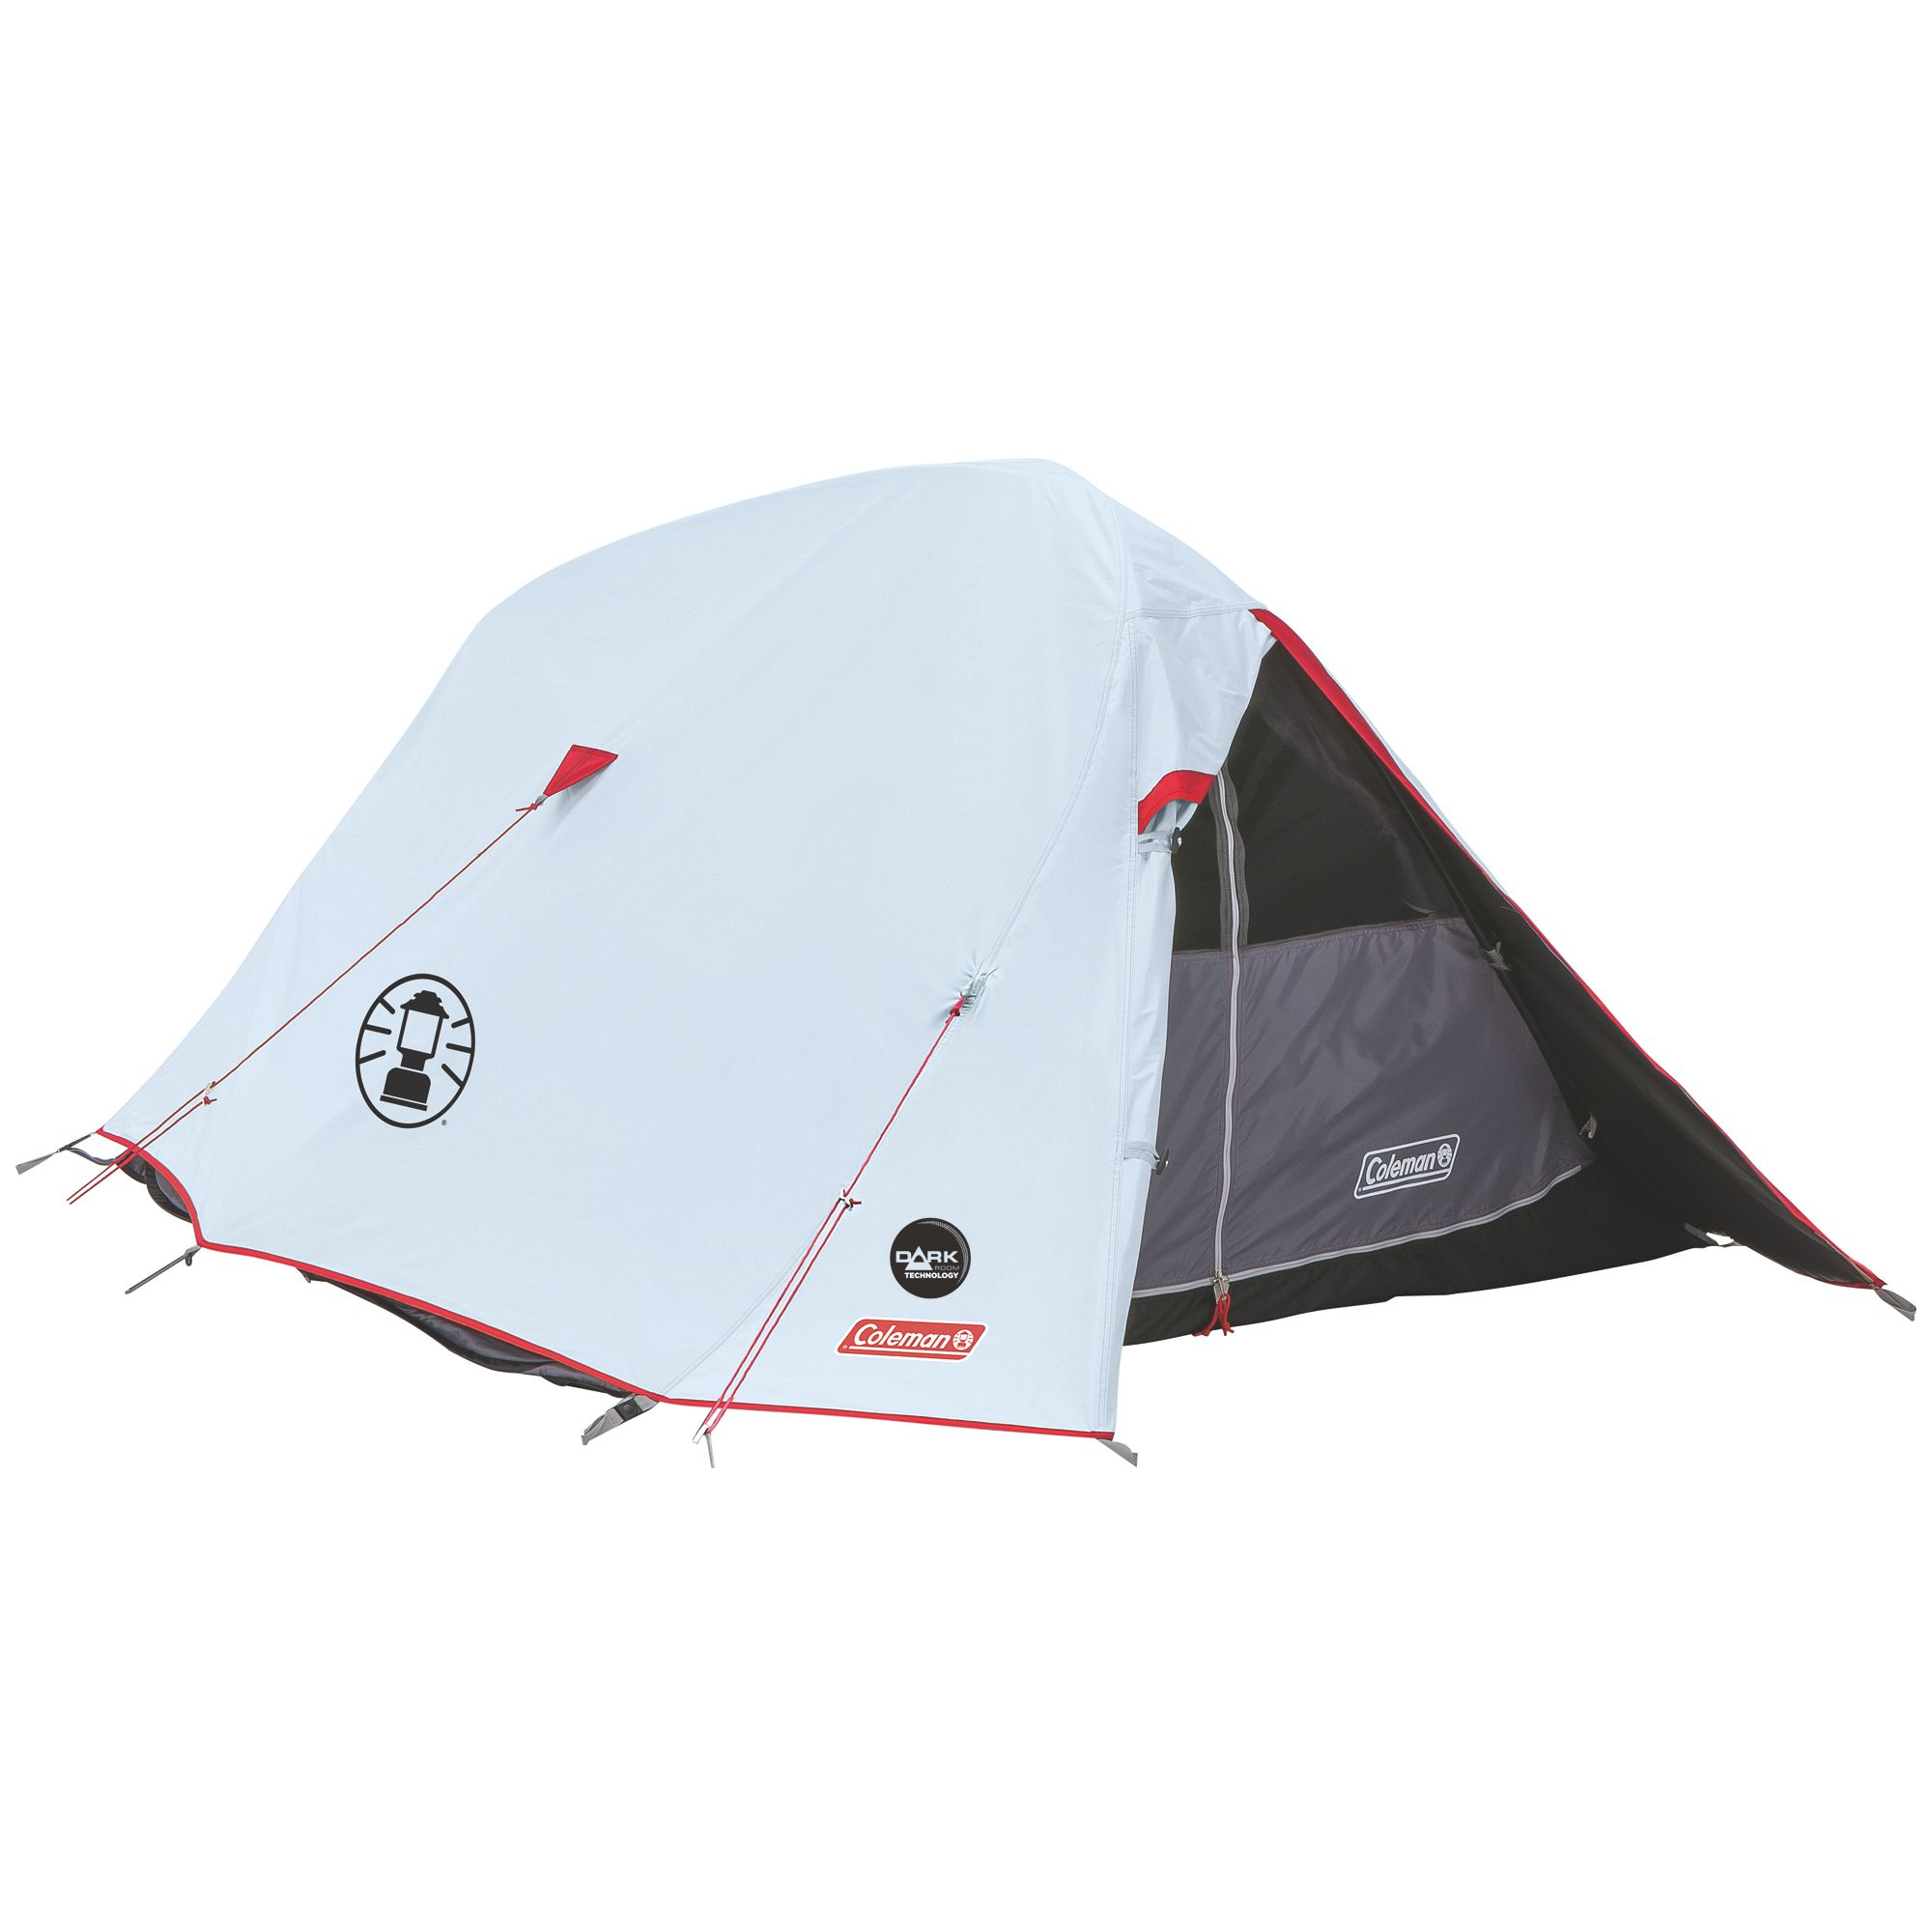 Coleman Tent Pop Up Series Darkroom 2 Person